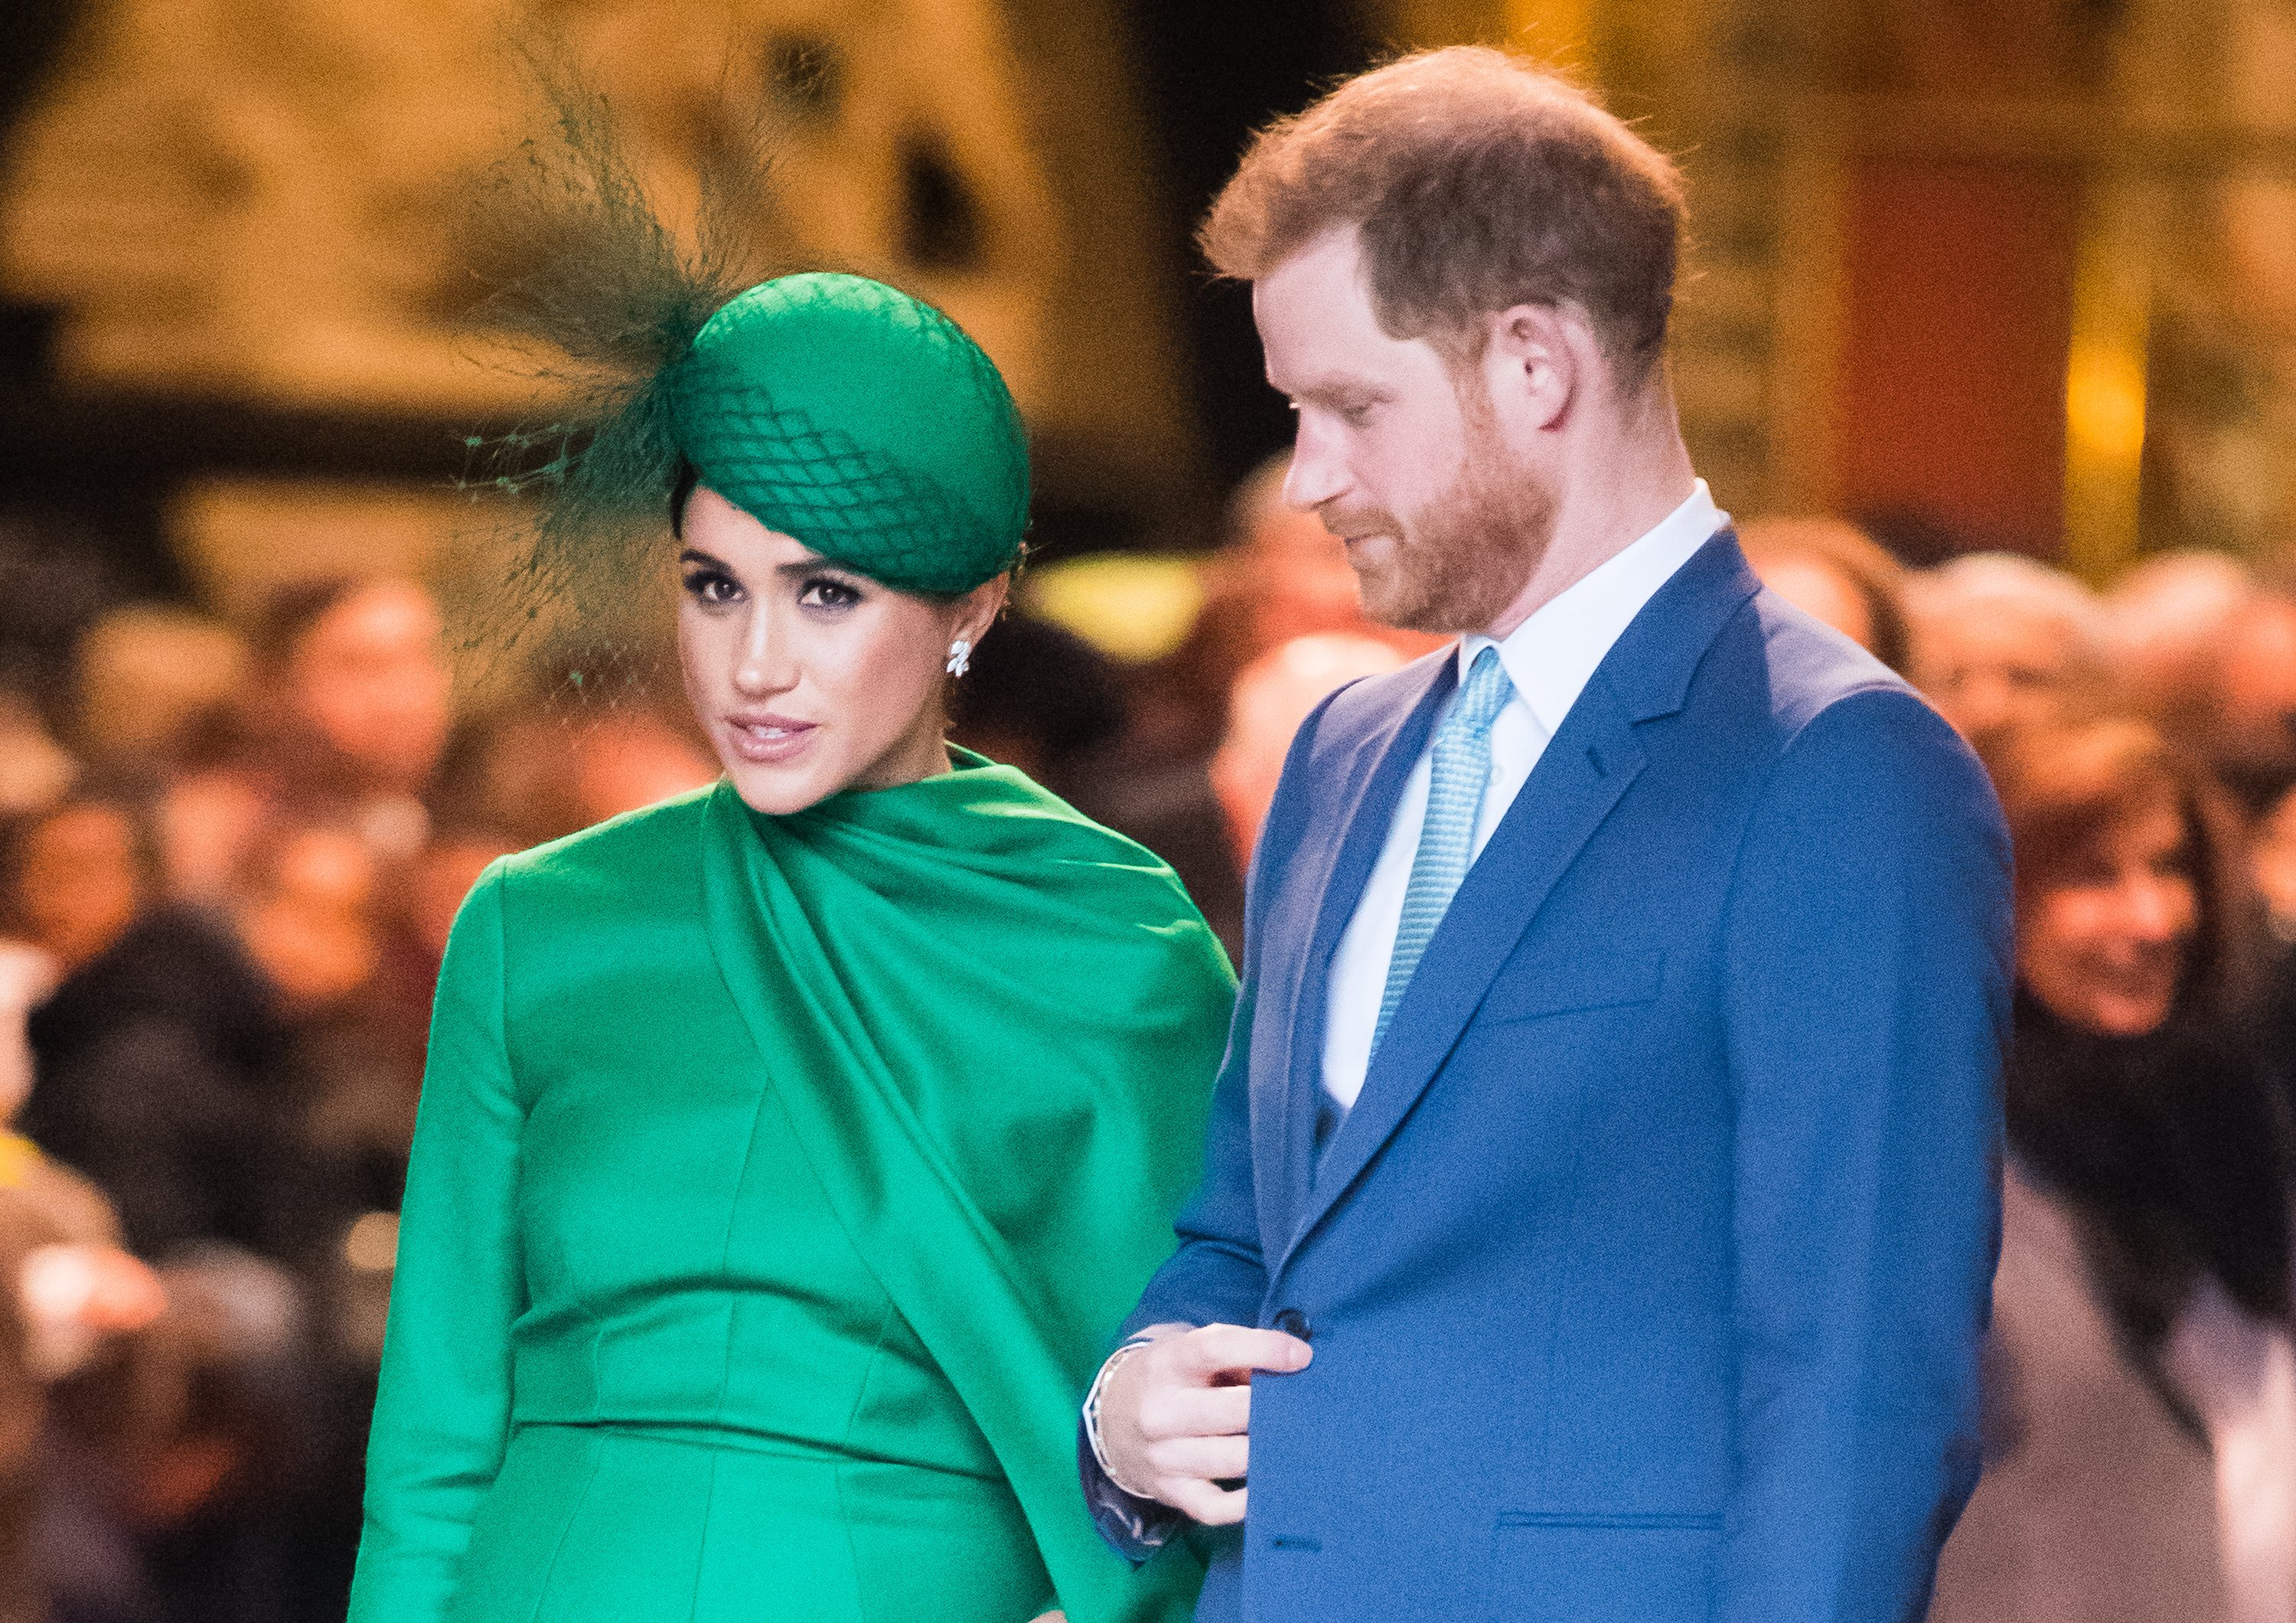 Image Credit: Getty Images / Prince Harry, Duhcess of Sussex and Meghan, Duchess of Sussex attend the Commonwealth Day Service 2020 on March 09, 2020 in London, England.